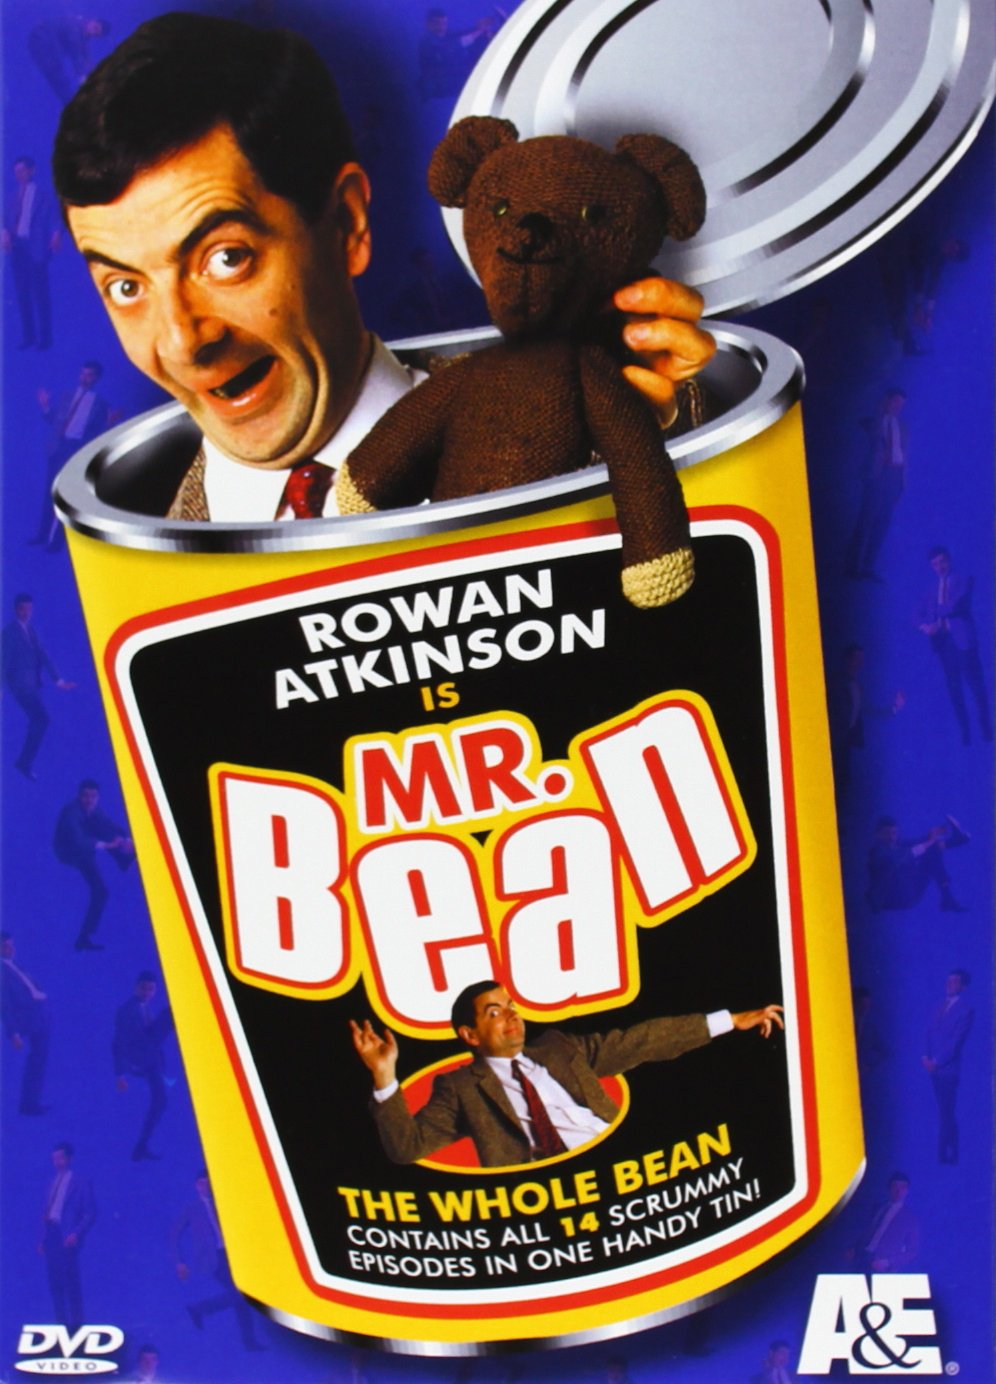 Mr. Bean - The Whole Bean (Complete Set) by A&E